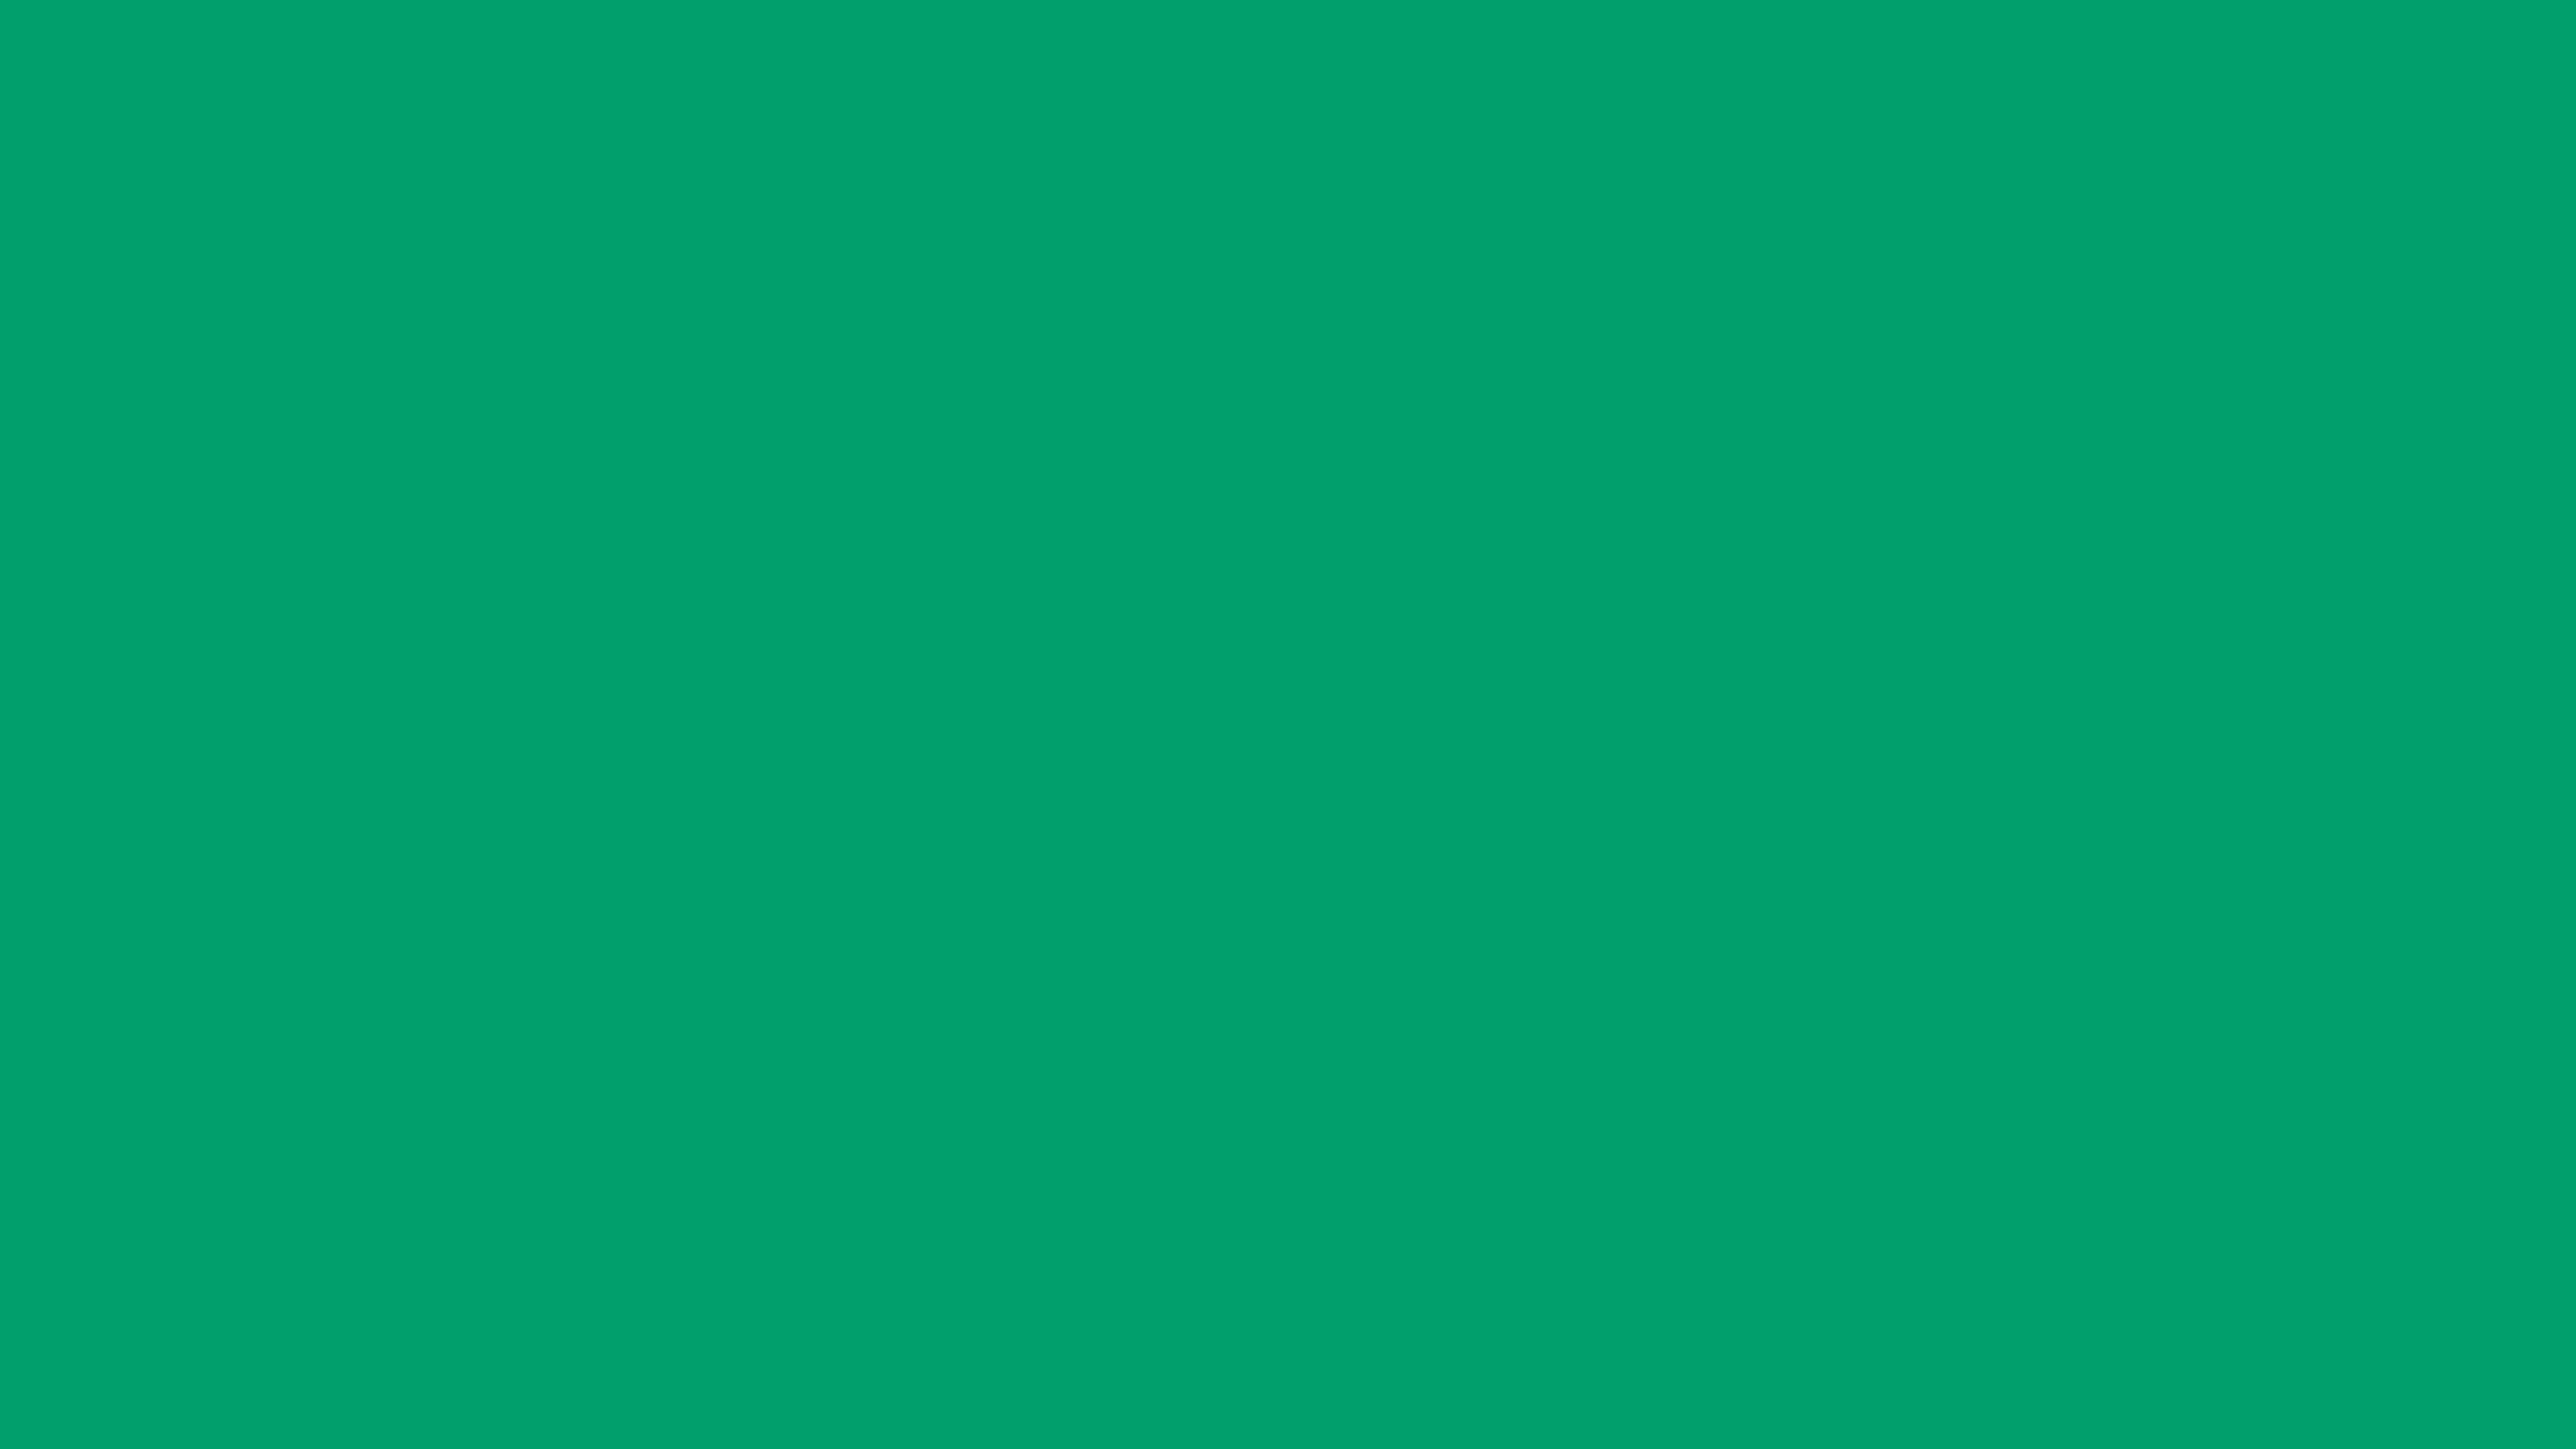 5120x2880 Green NCS Solid Color Background